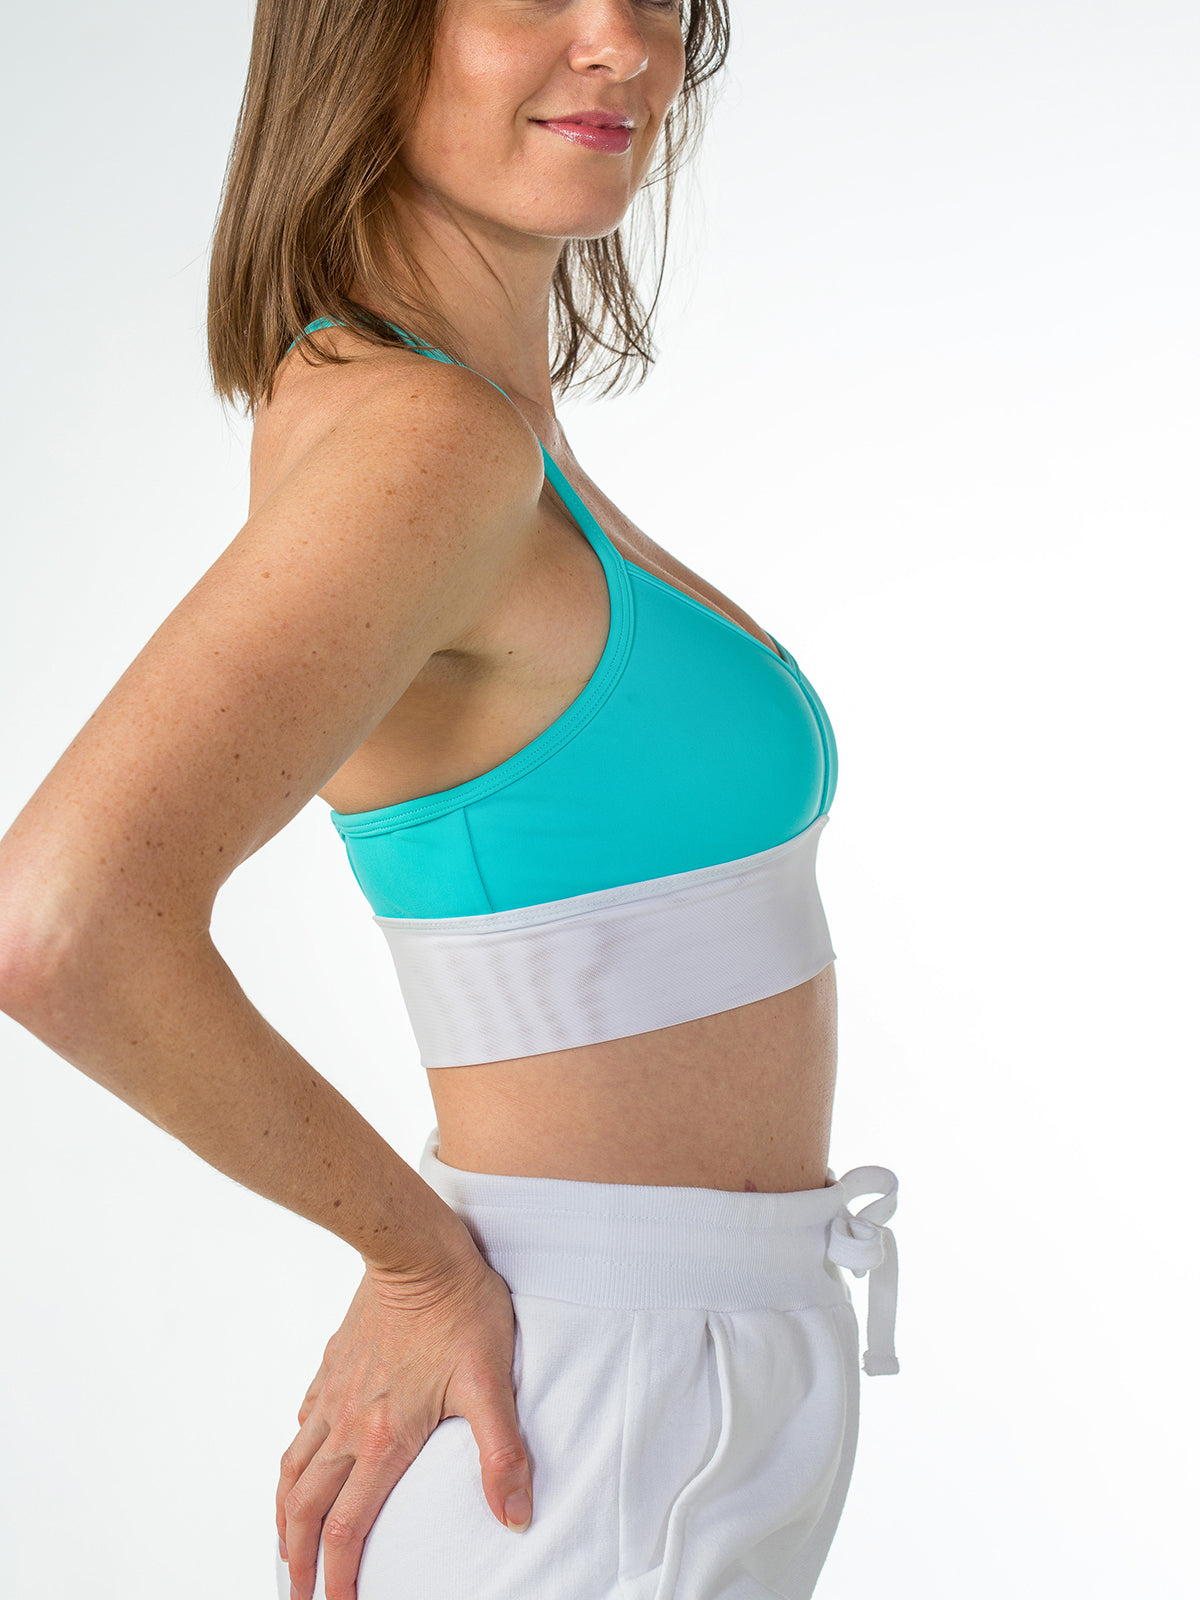 Zen Strappy Sports Bra Aqua with White Mesh